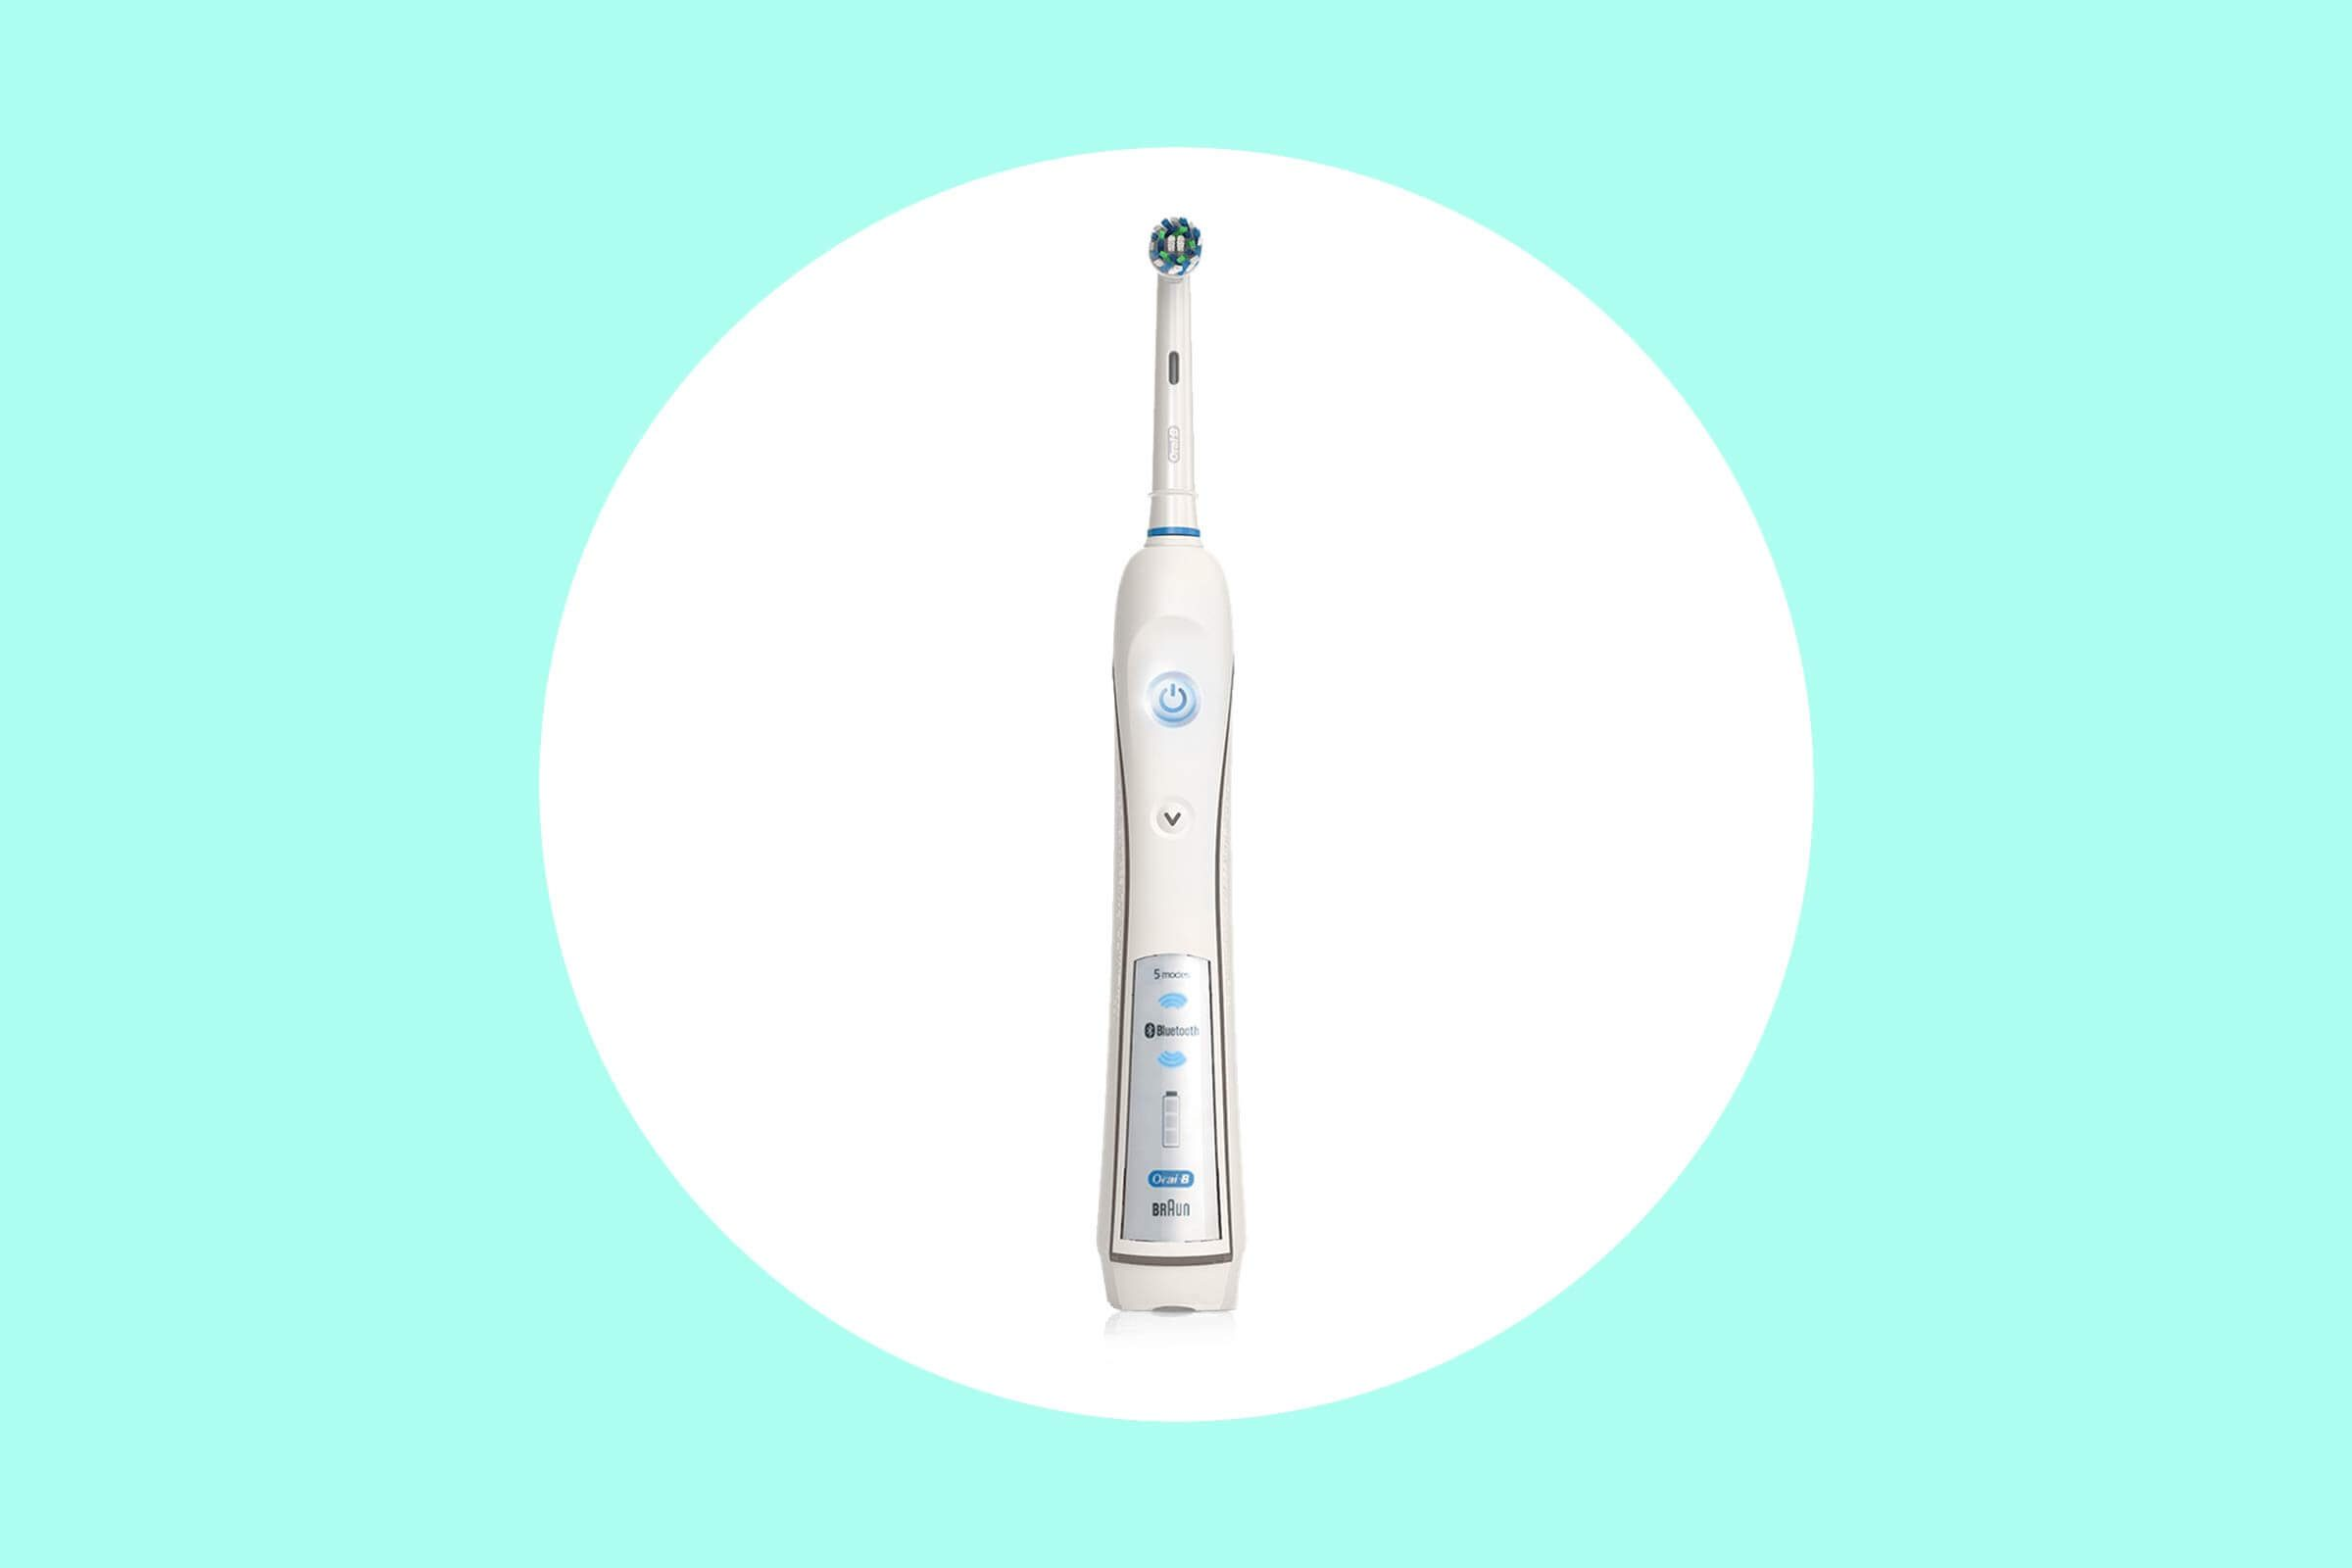 Oral-B Professional Care SmartSeries 5000 toothbrush.